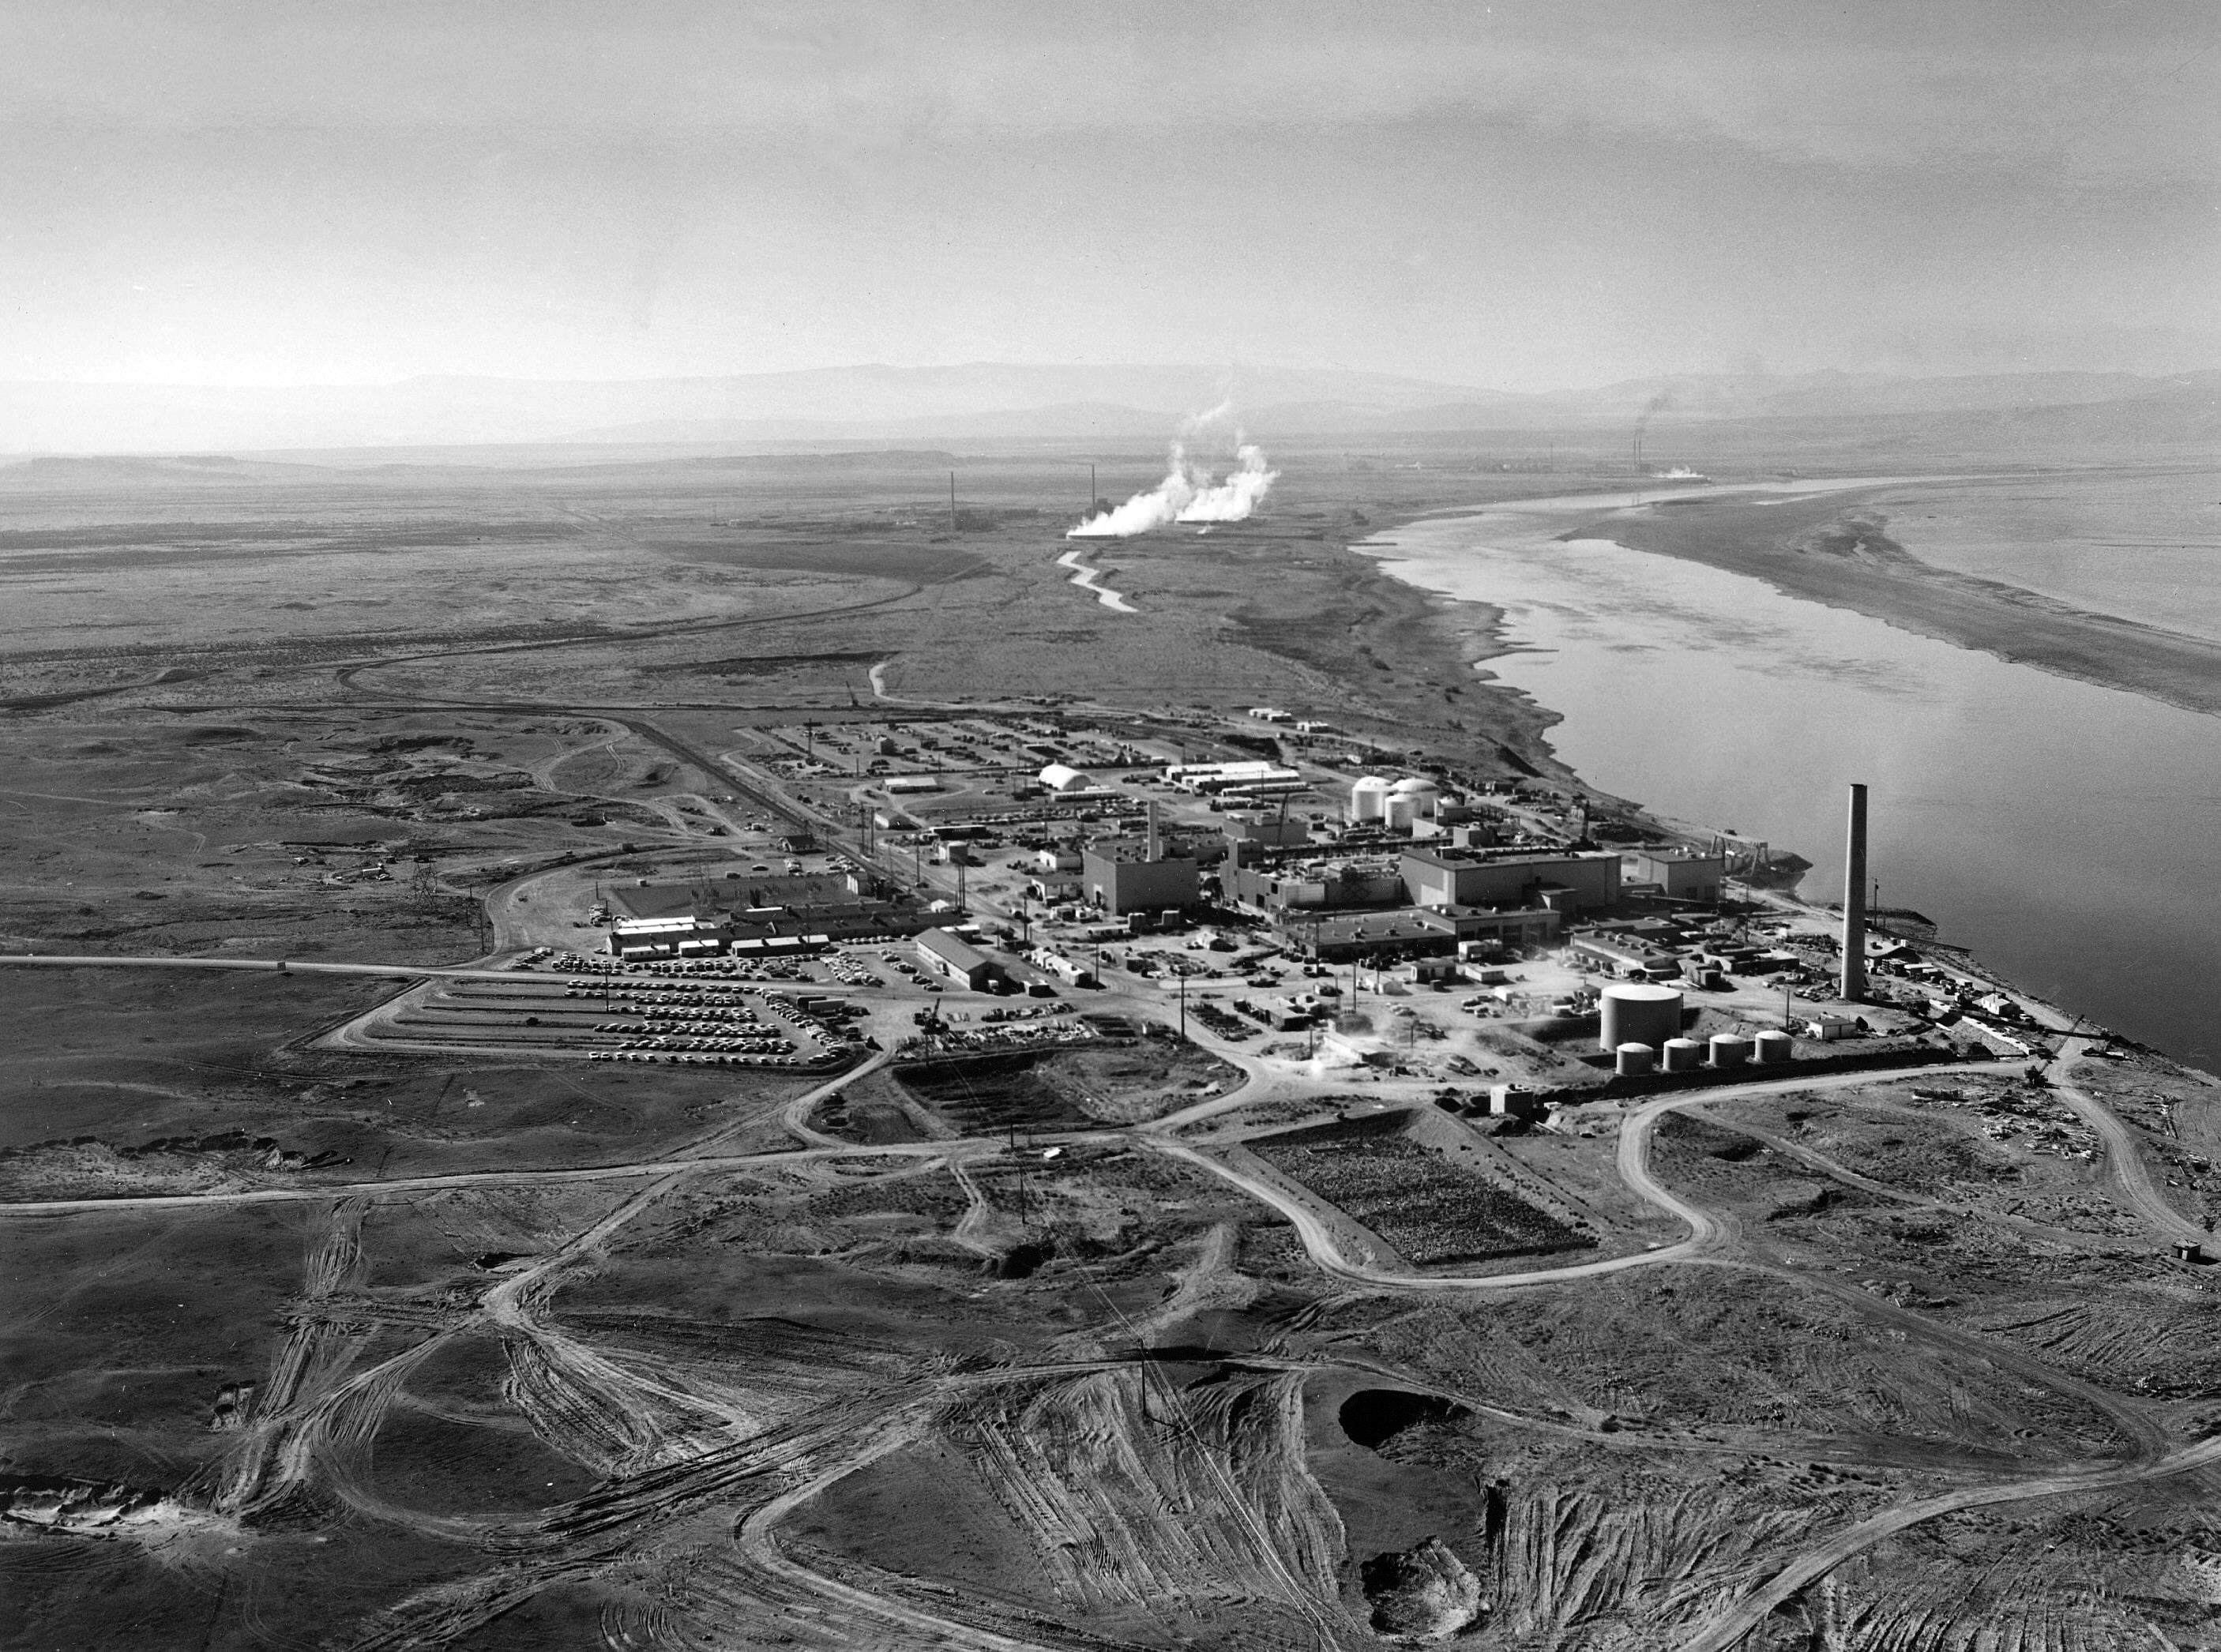 The Hanford Project